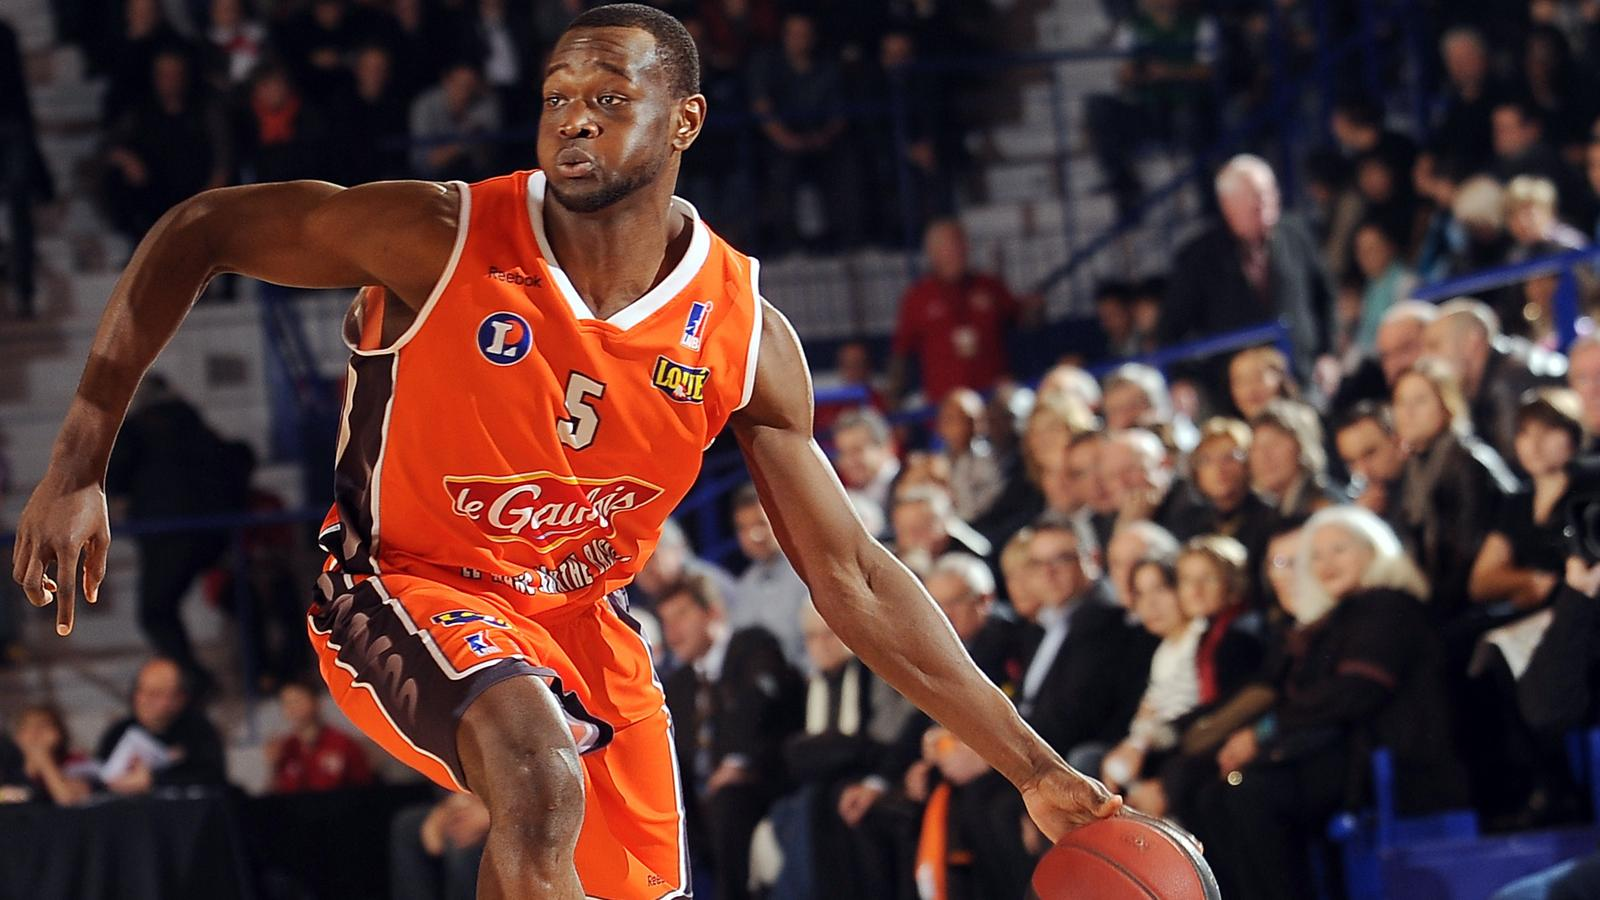 Basket Pro A: Orléans vs Le Mans en direct live streaming